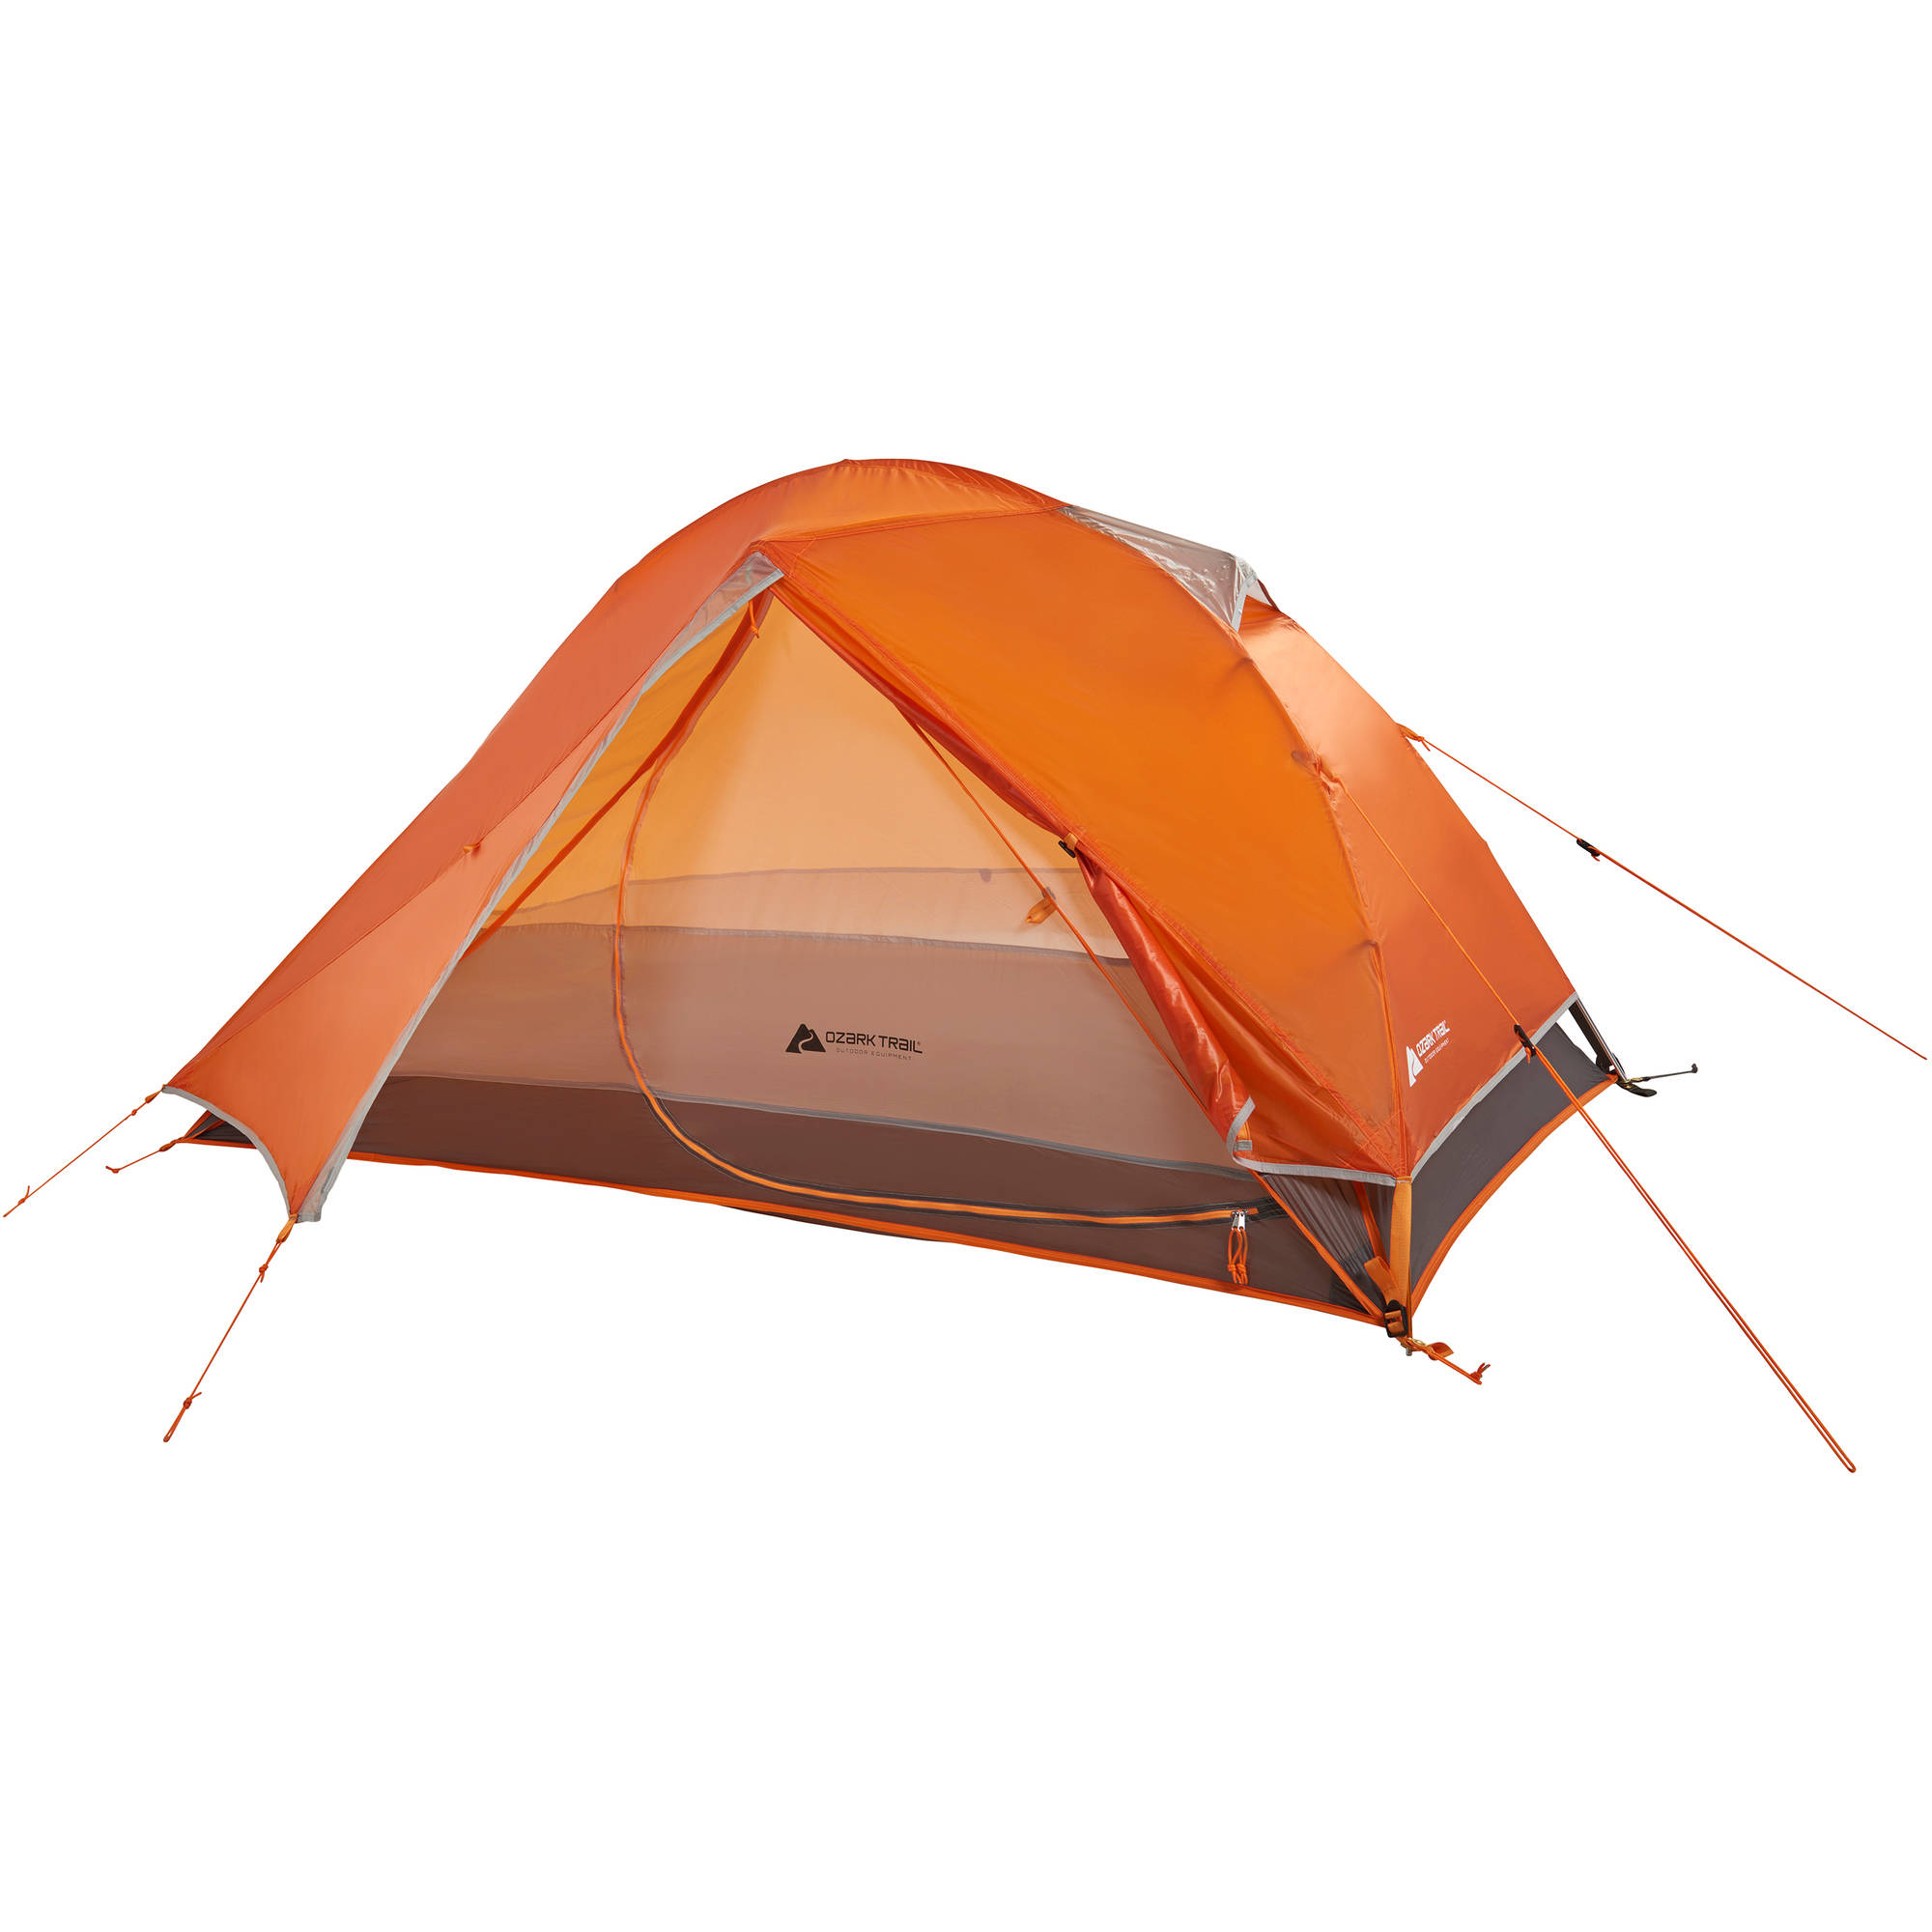 Ozark Trail 43 Ounce Ultralight Backpacking Tent Sleeps 1  sc 1 st  Walmart & Ozark Trail 43 Ounce Ultralight Backpacking Tent Sleeps 1 ...